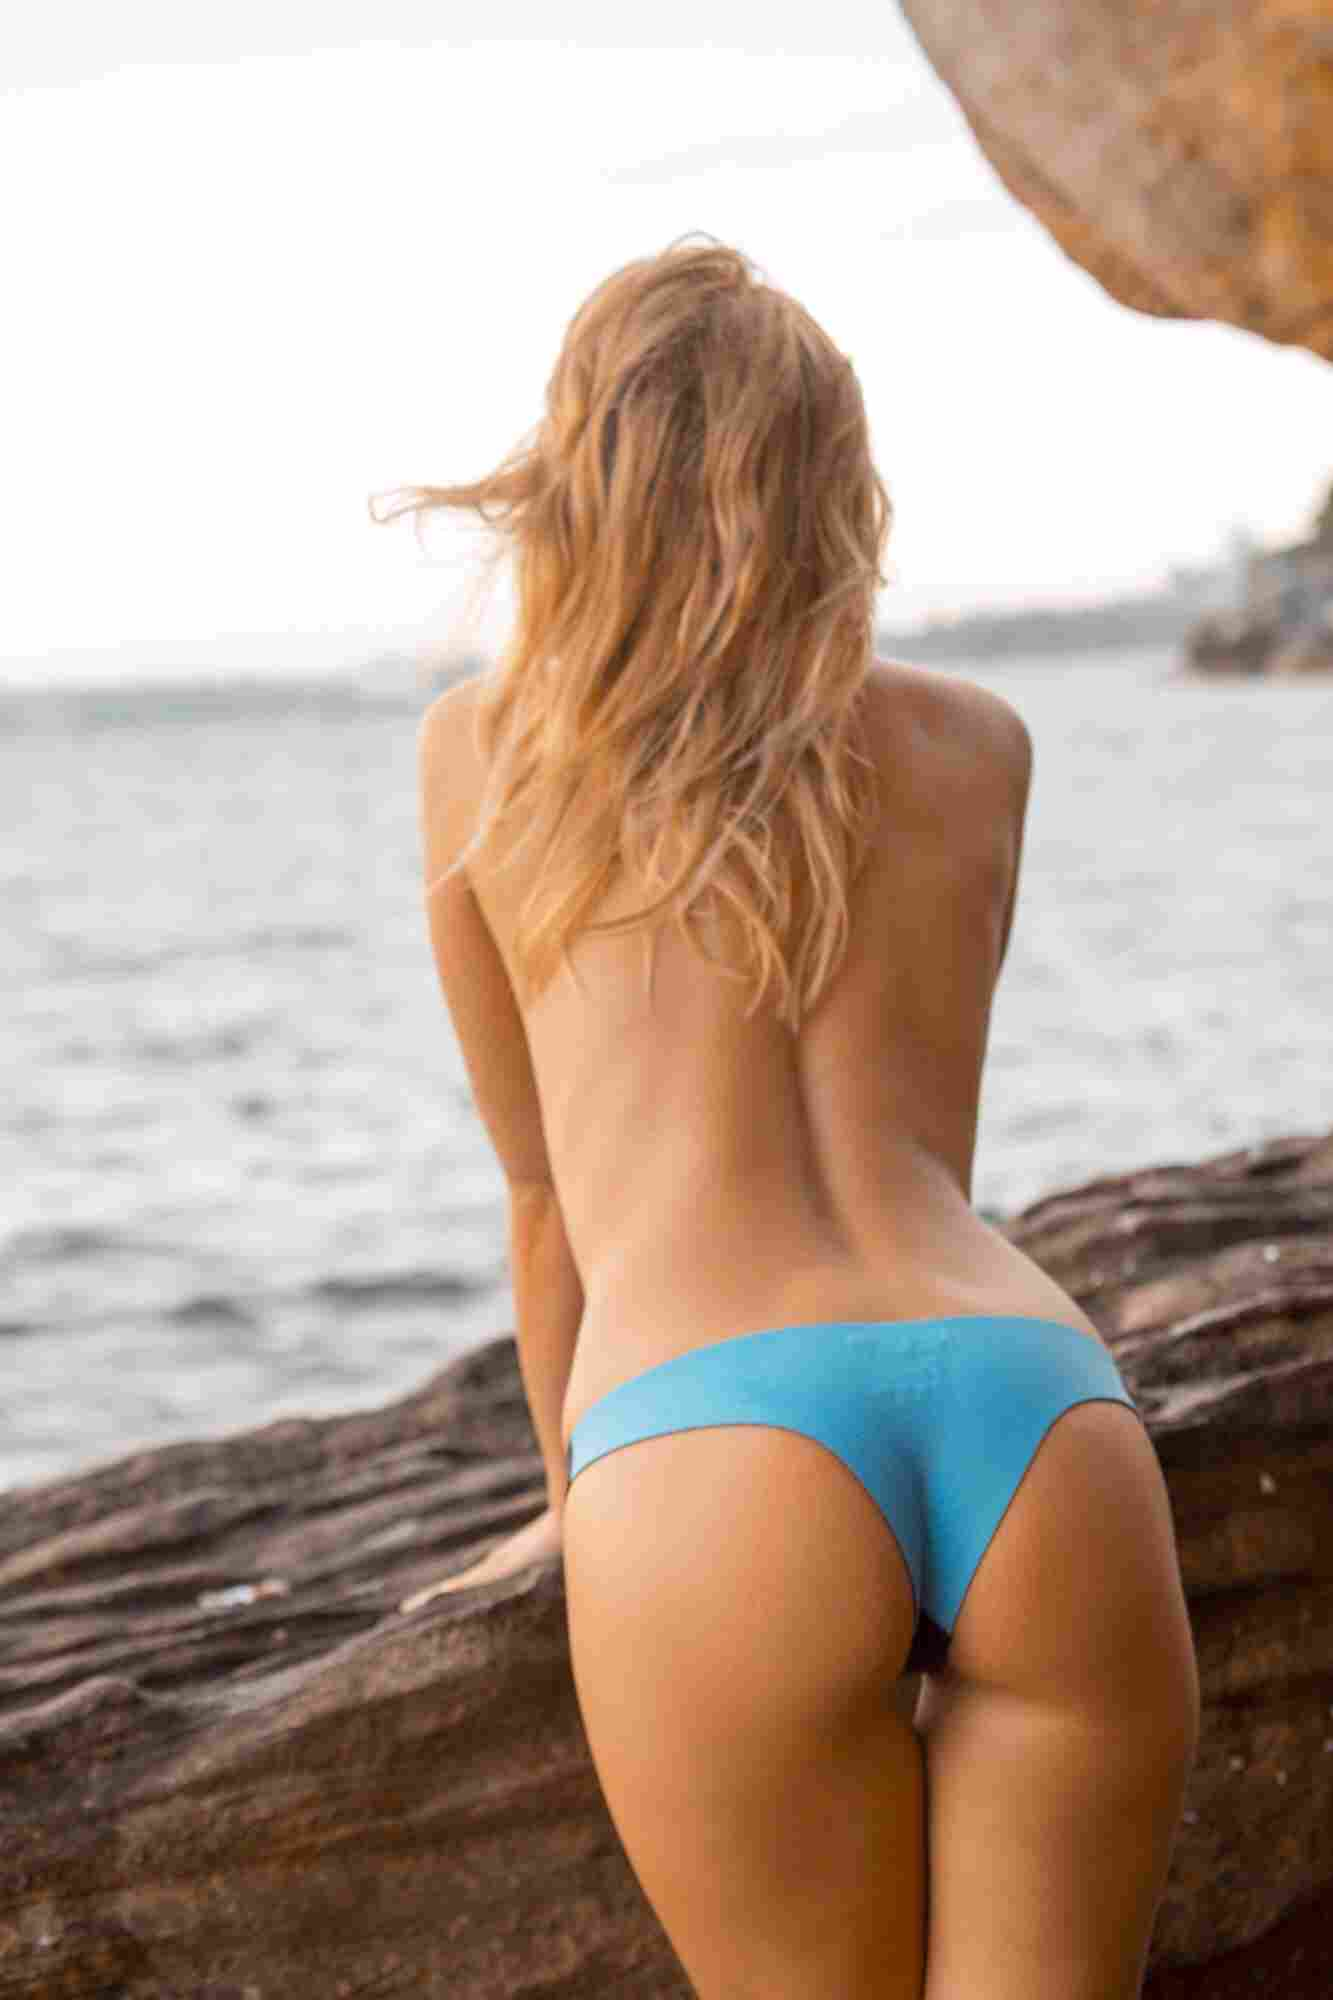 craigslist personals casual encounters sex no strings attached Perth